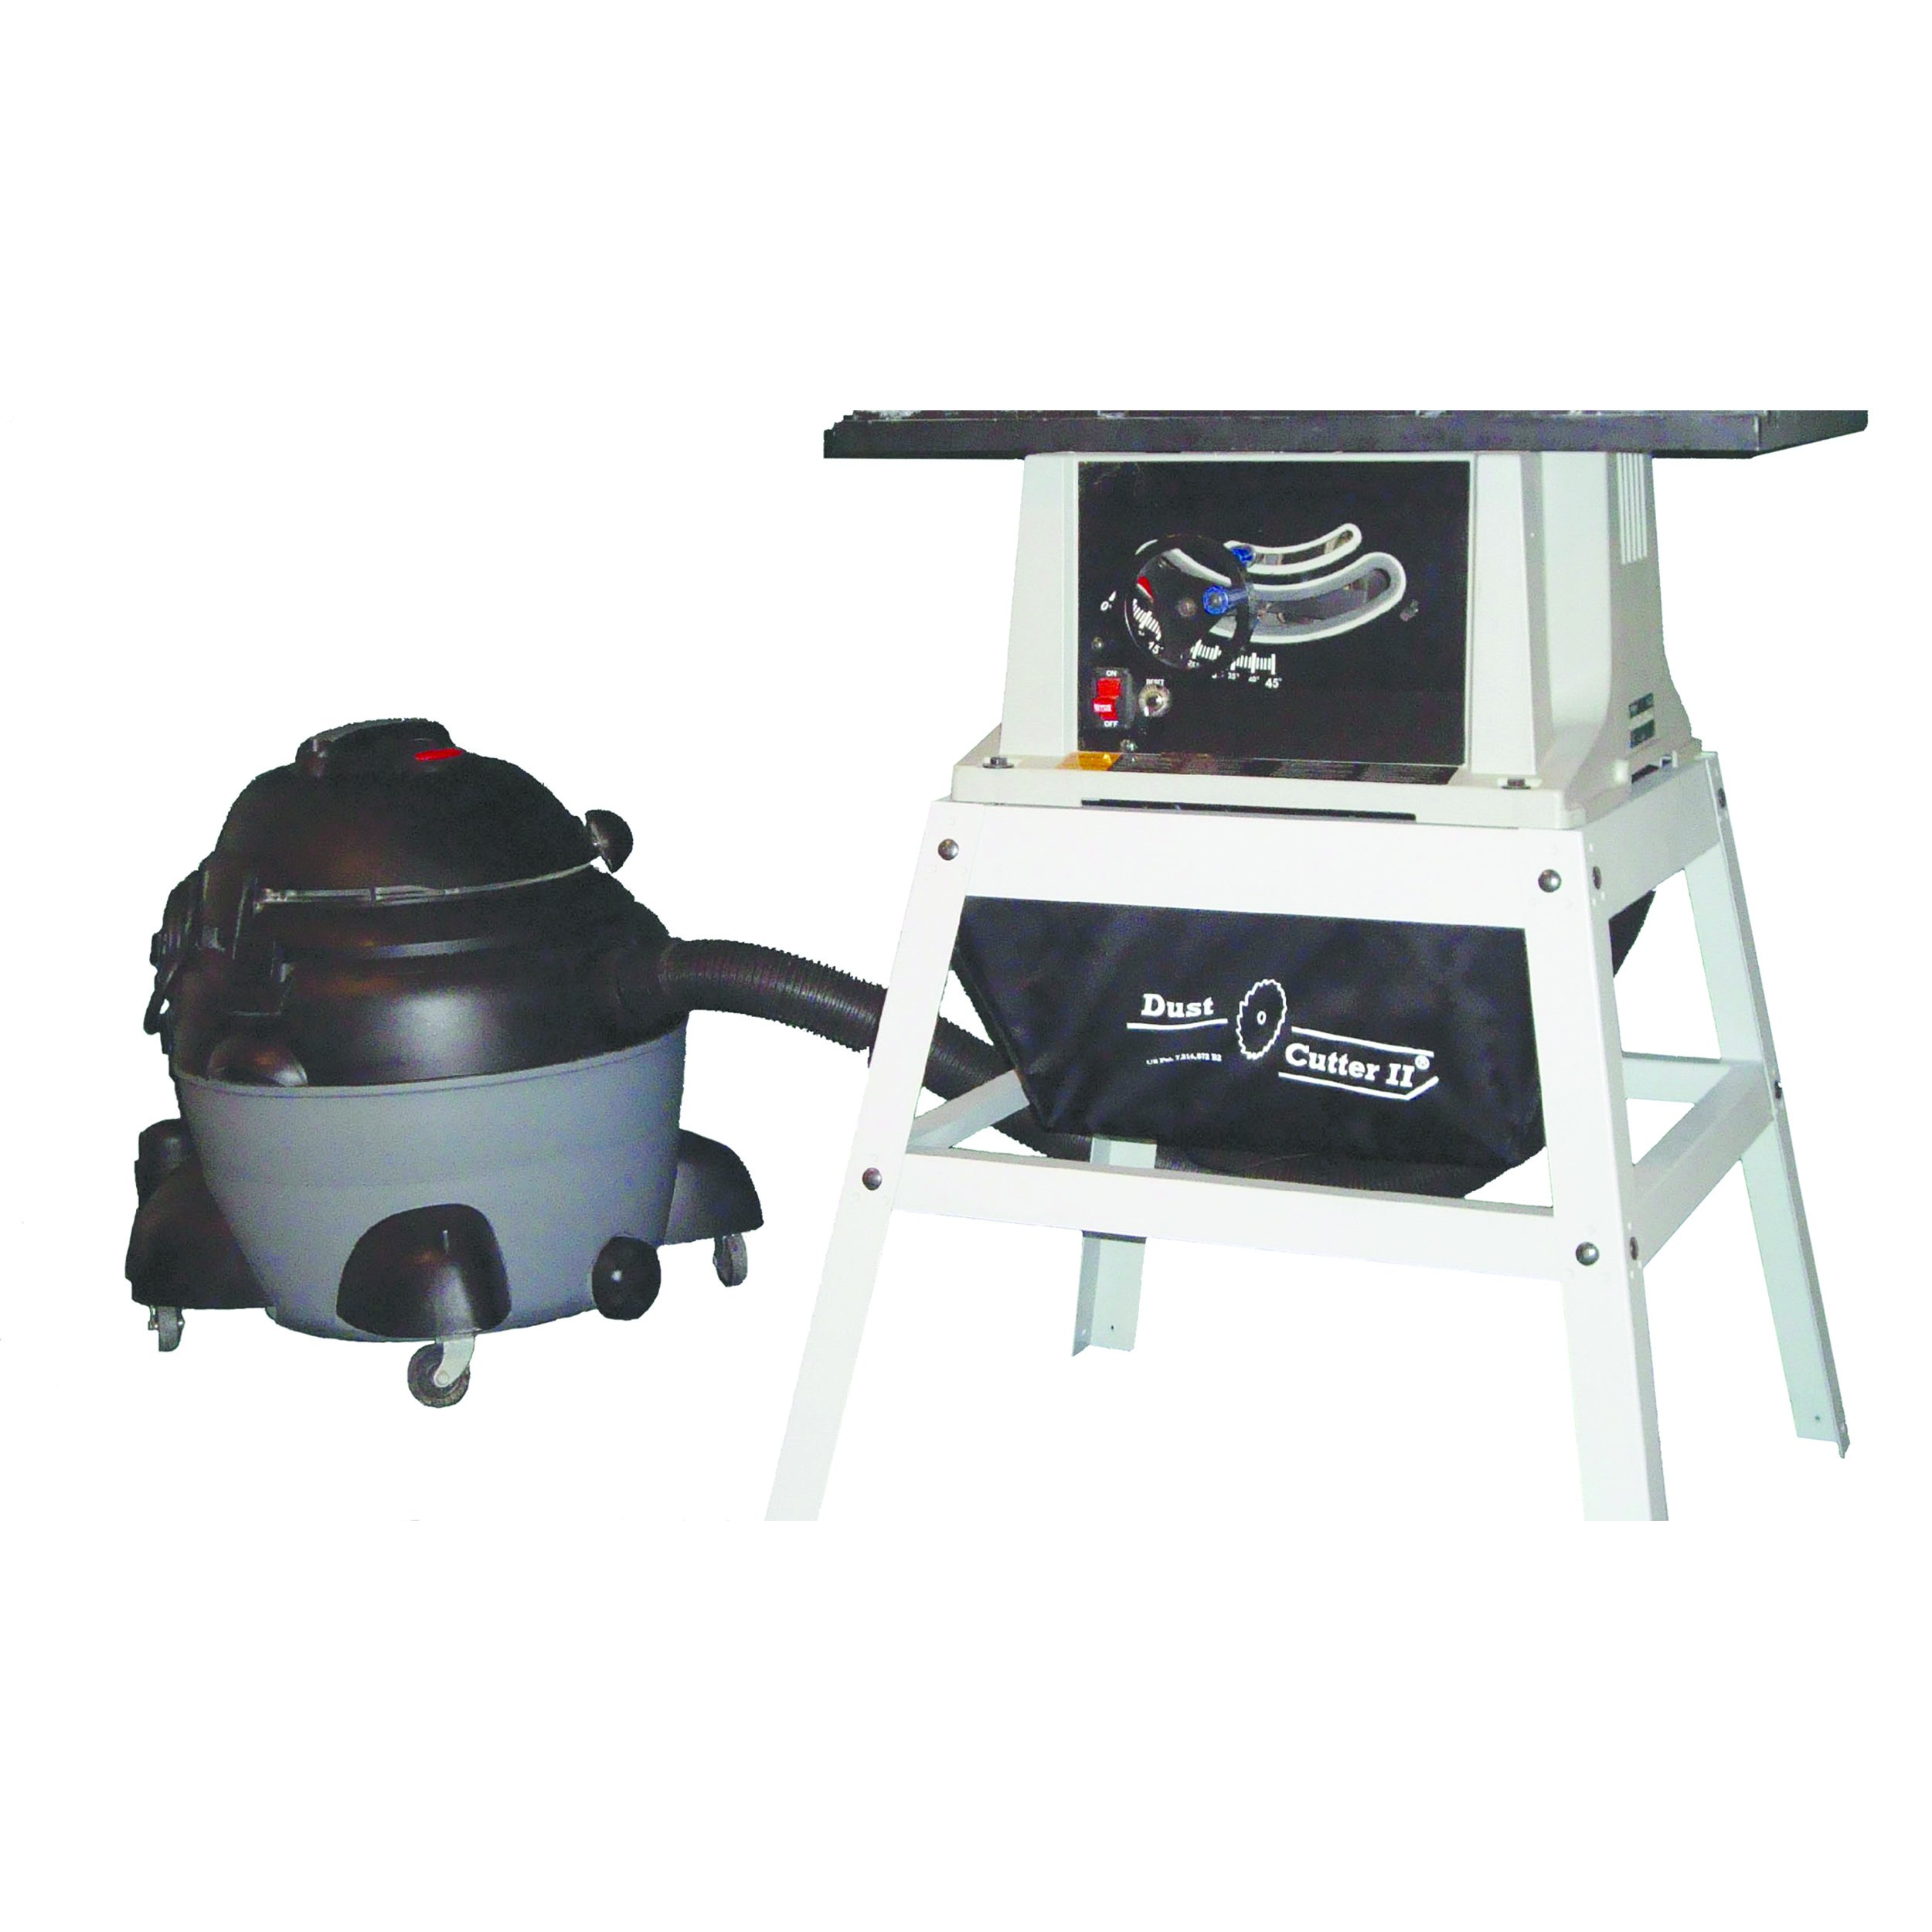 Dust Cutter II for Contractor Style Table Saws by Keen